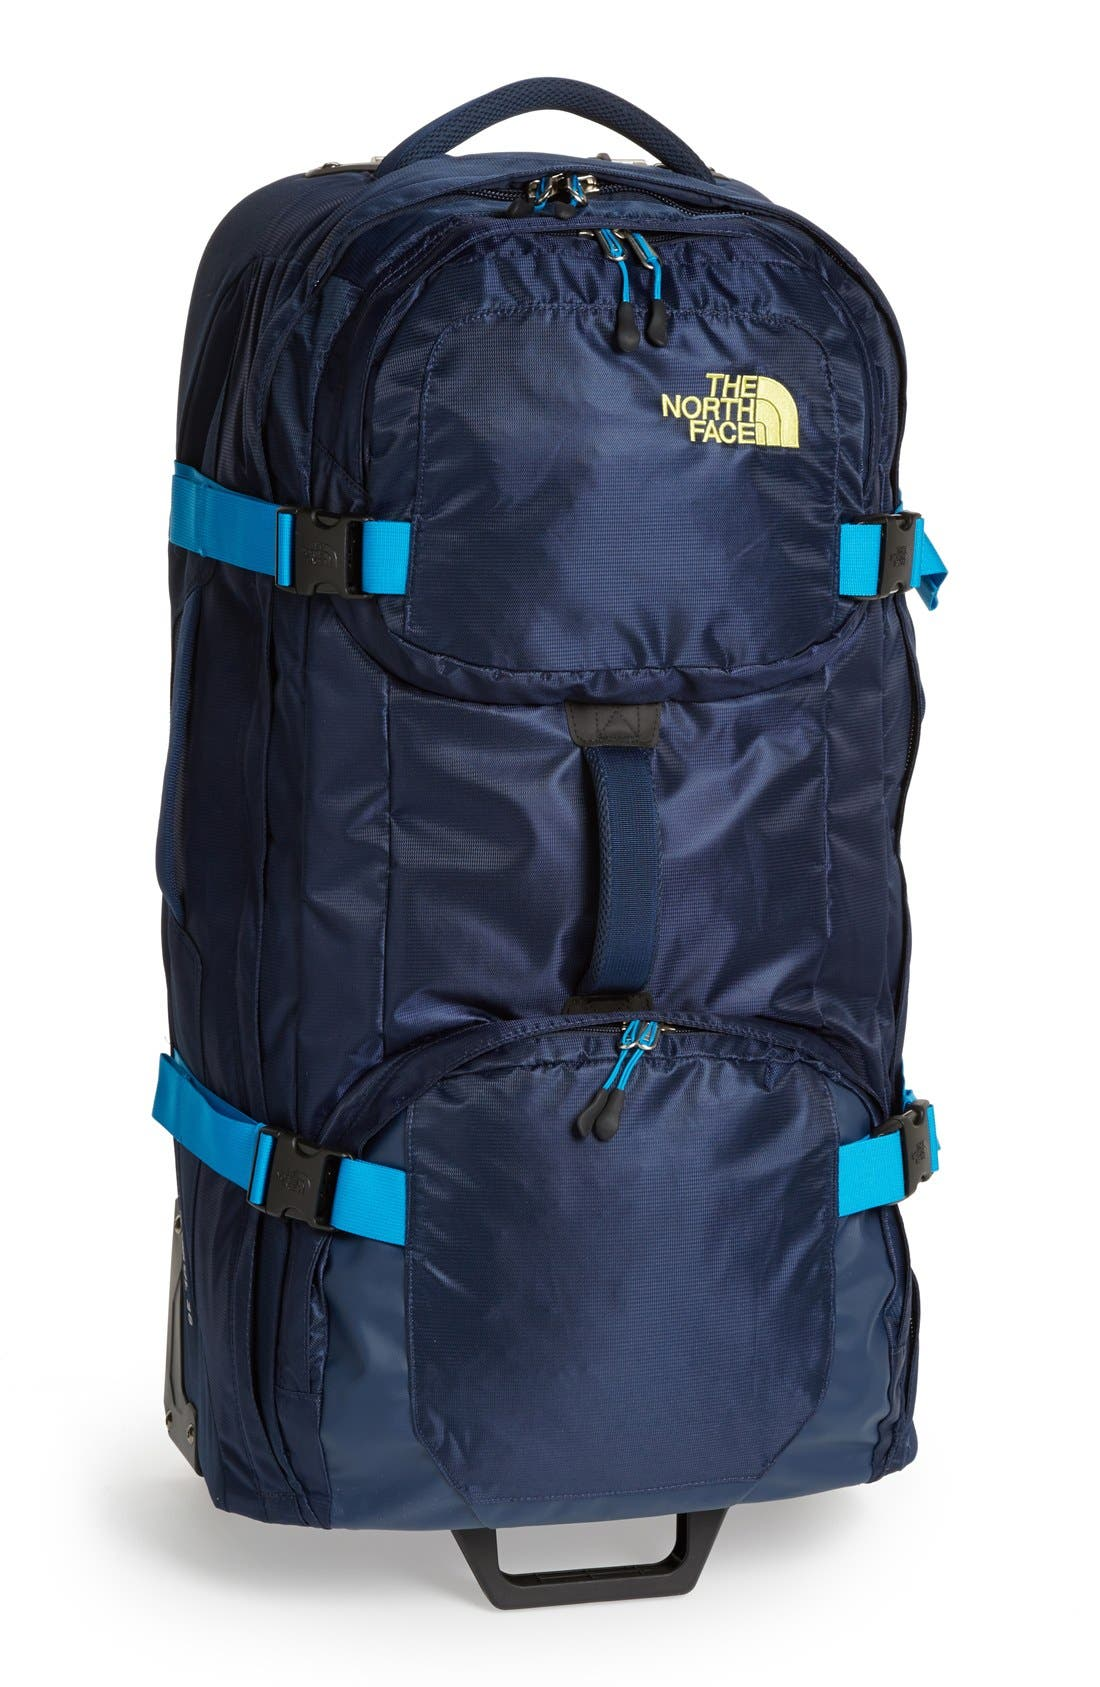 Alternate Image 1 Selected - The North Face 'Longhaul' Rolling Duffel Bag (30 Inch)